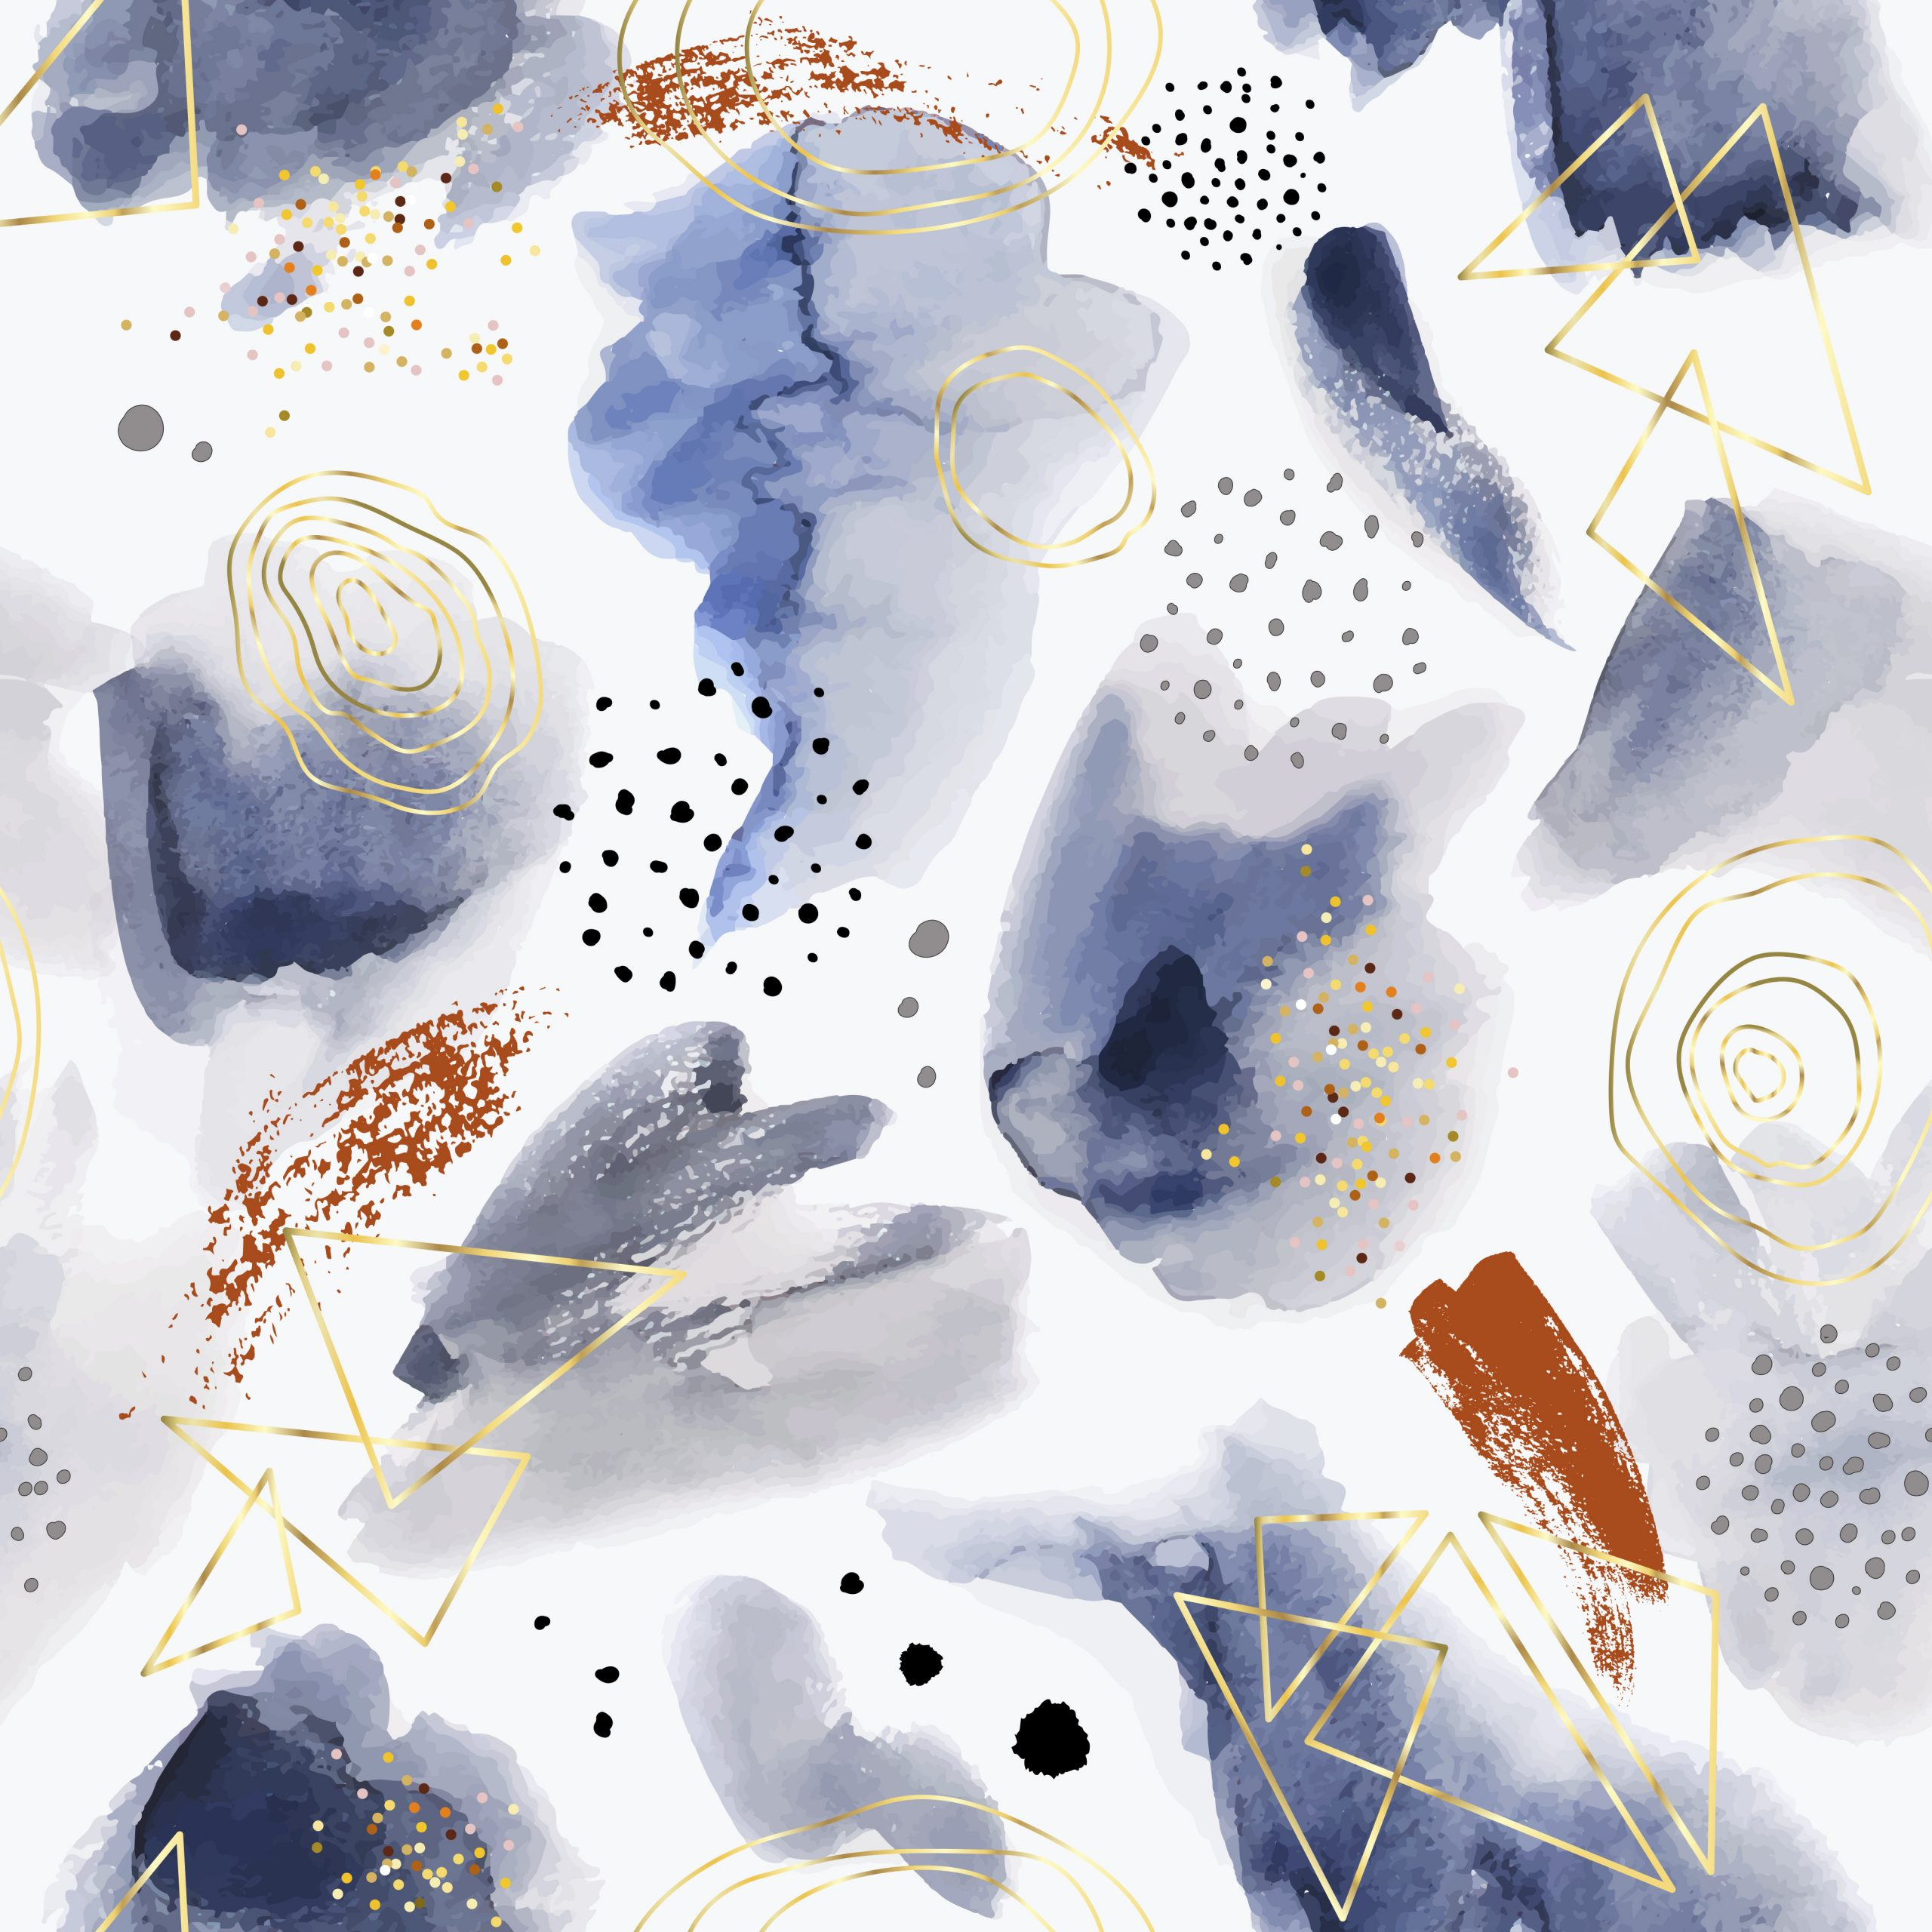 Pastel abstract painted vector pattern. Watercolor blue wet brush hand drawn paper texture background.